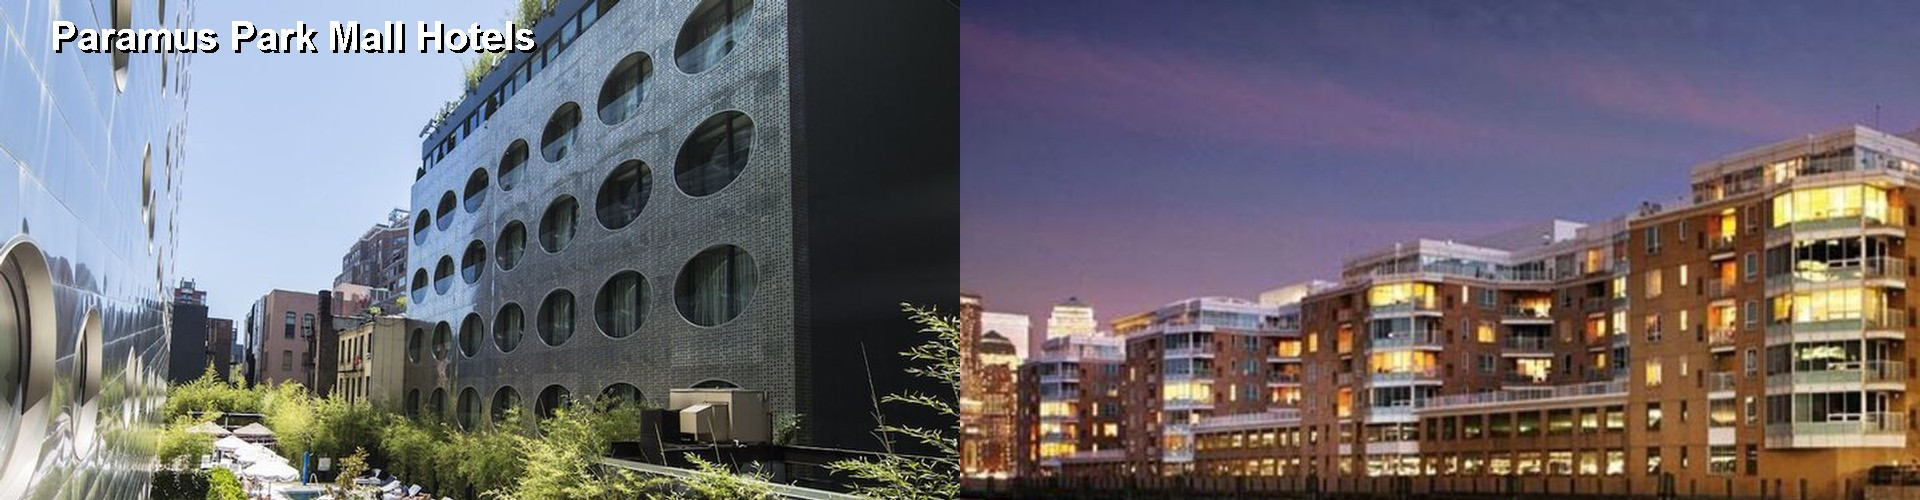 5 Best Hotels Near Paramus Park Mall